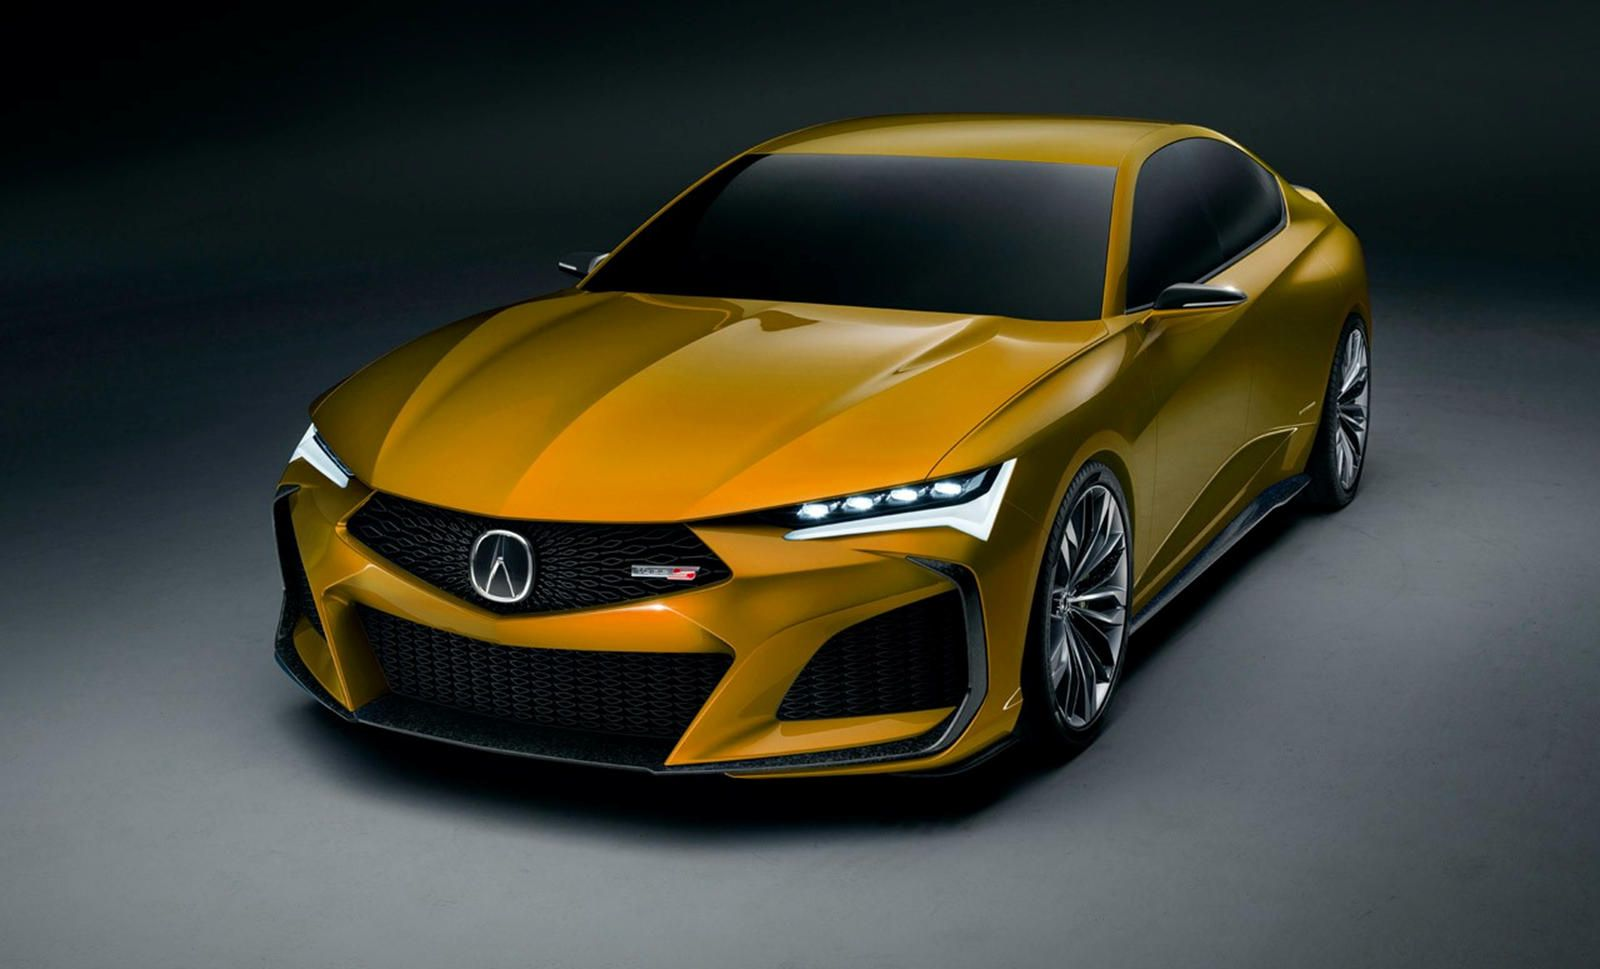 Acura Type S Concept Looks Brilliant In Every Color Which One Would You Choose In 2020 Acura Cars New Cars Acura